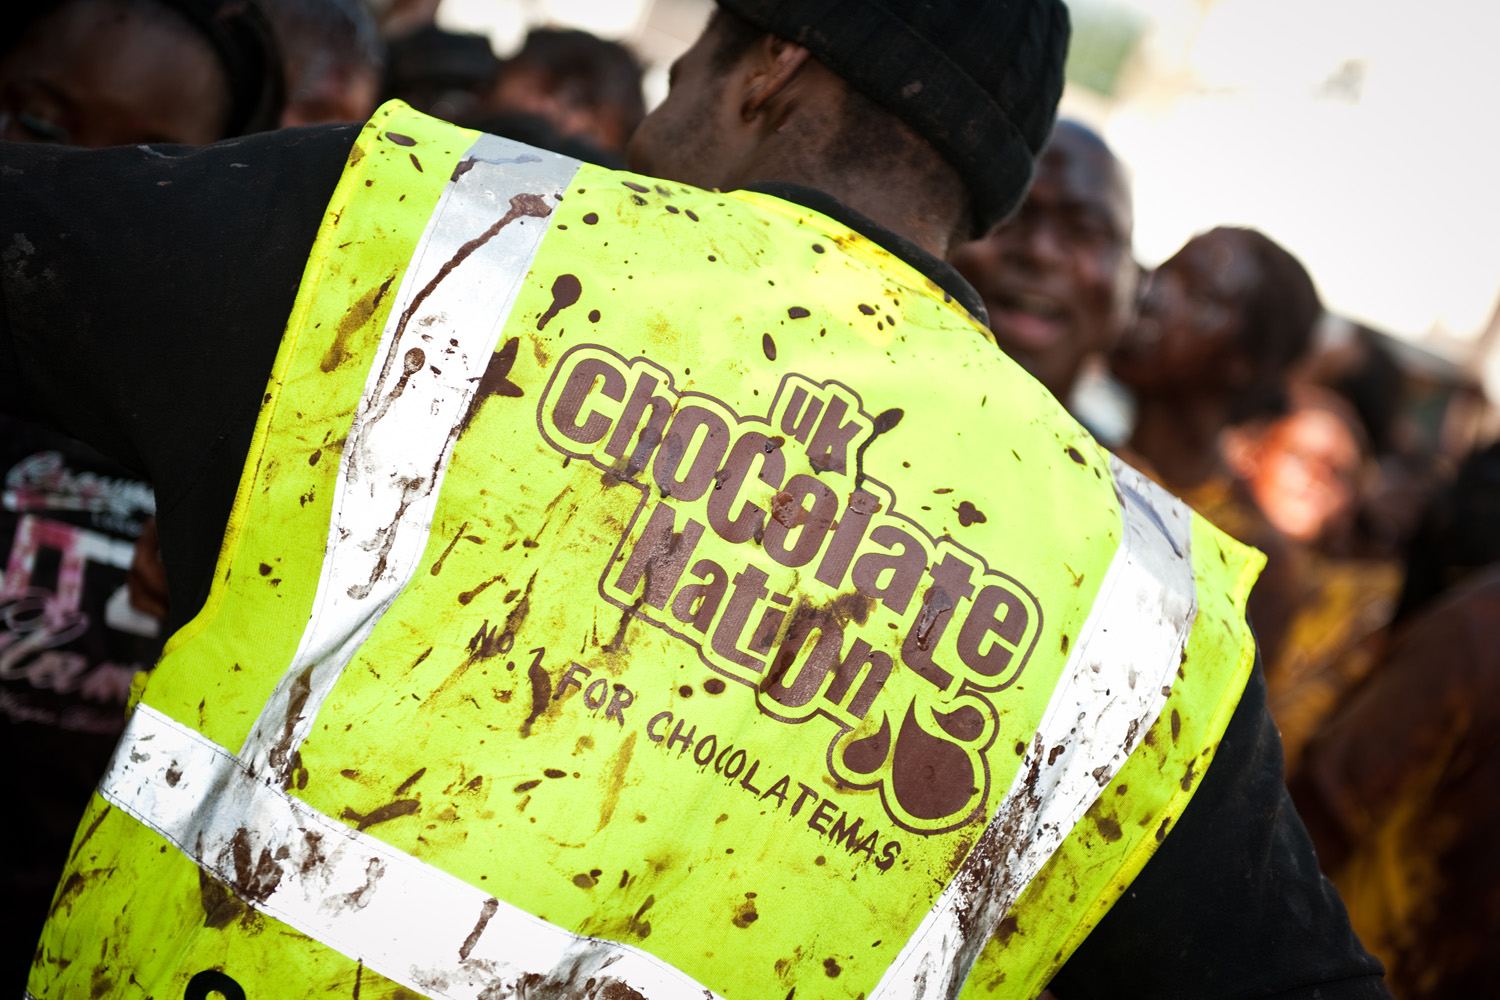 Carnival_the_chocolate_02